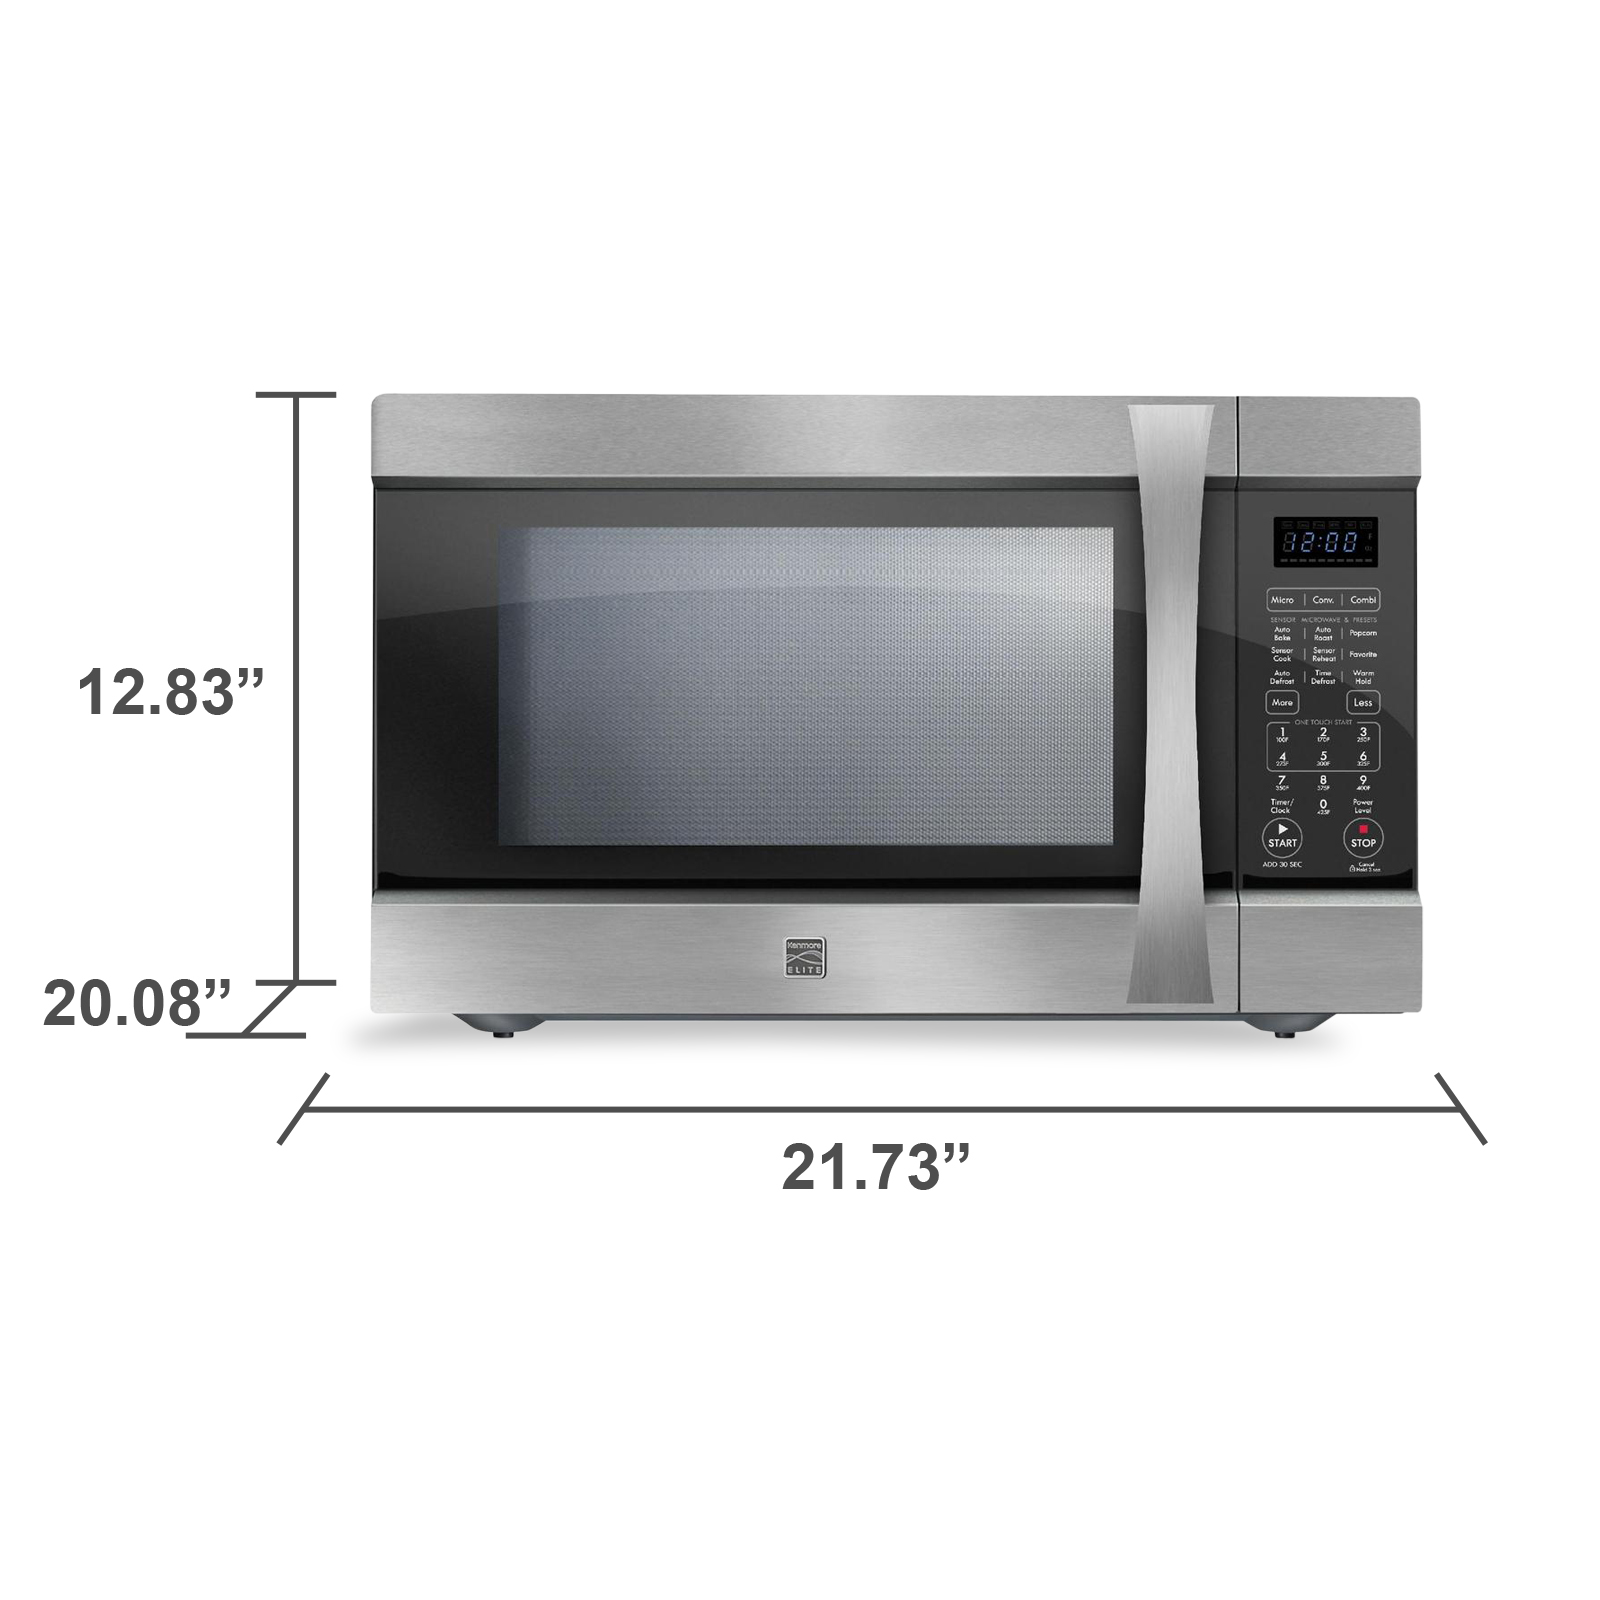 Kenmore Elite EC042A5E 1.5 cu. ft. Countertop Microwave w/ Convection - Stainless Steel